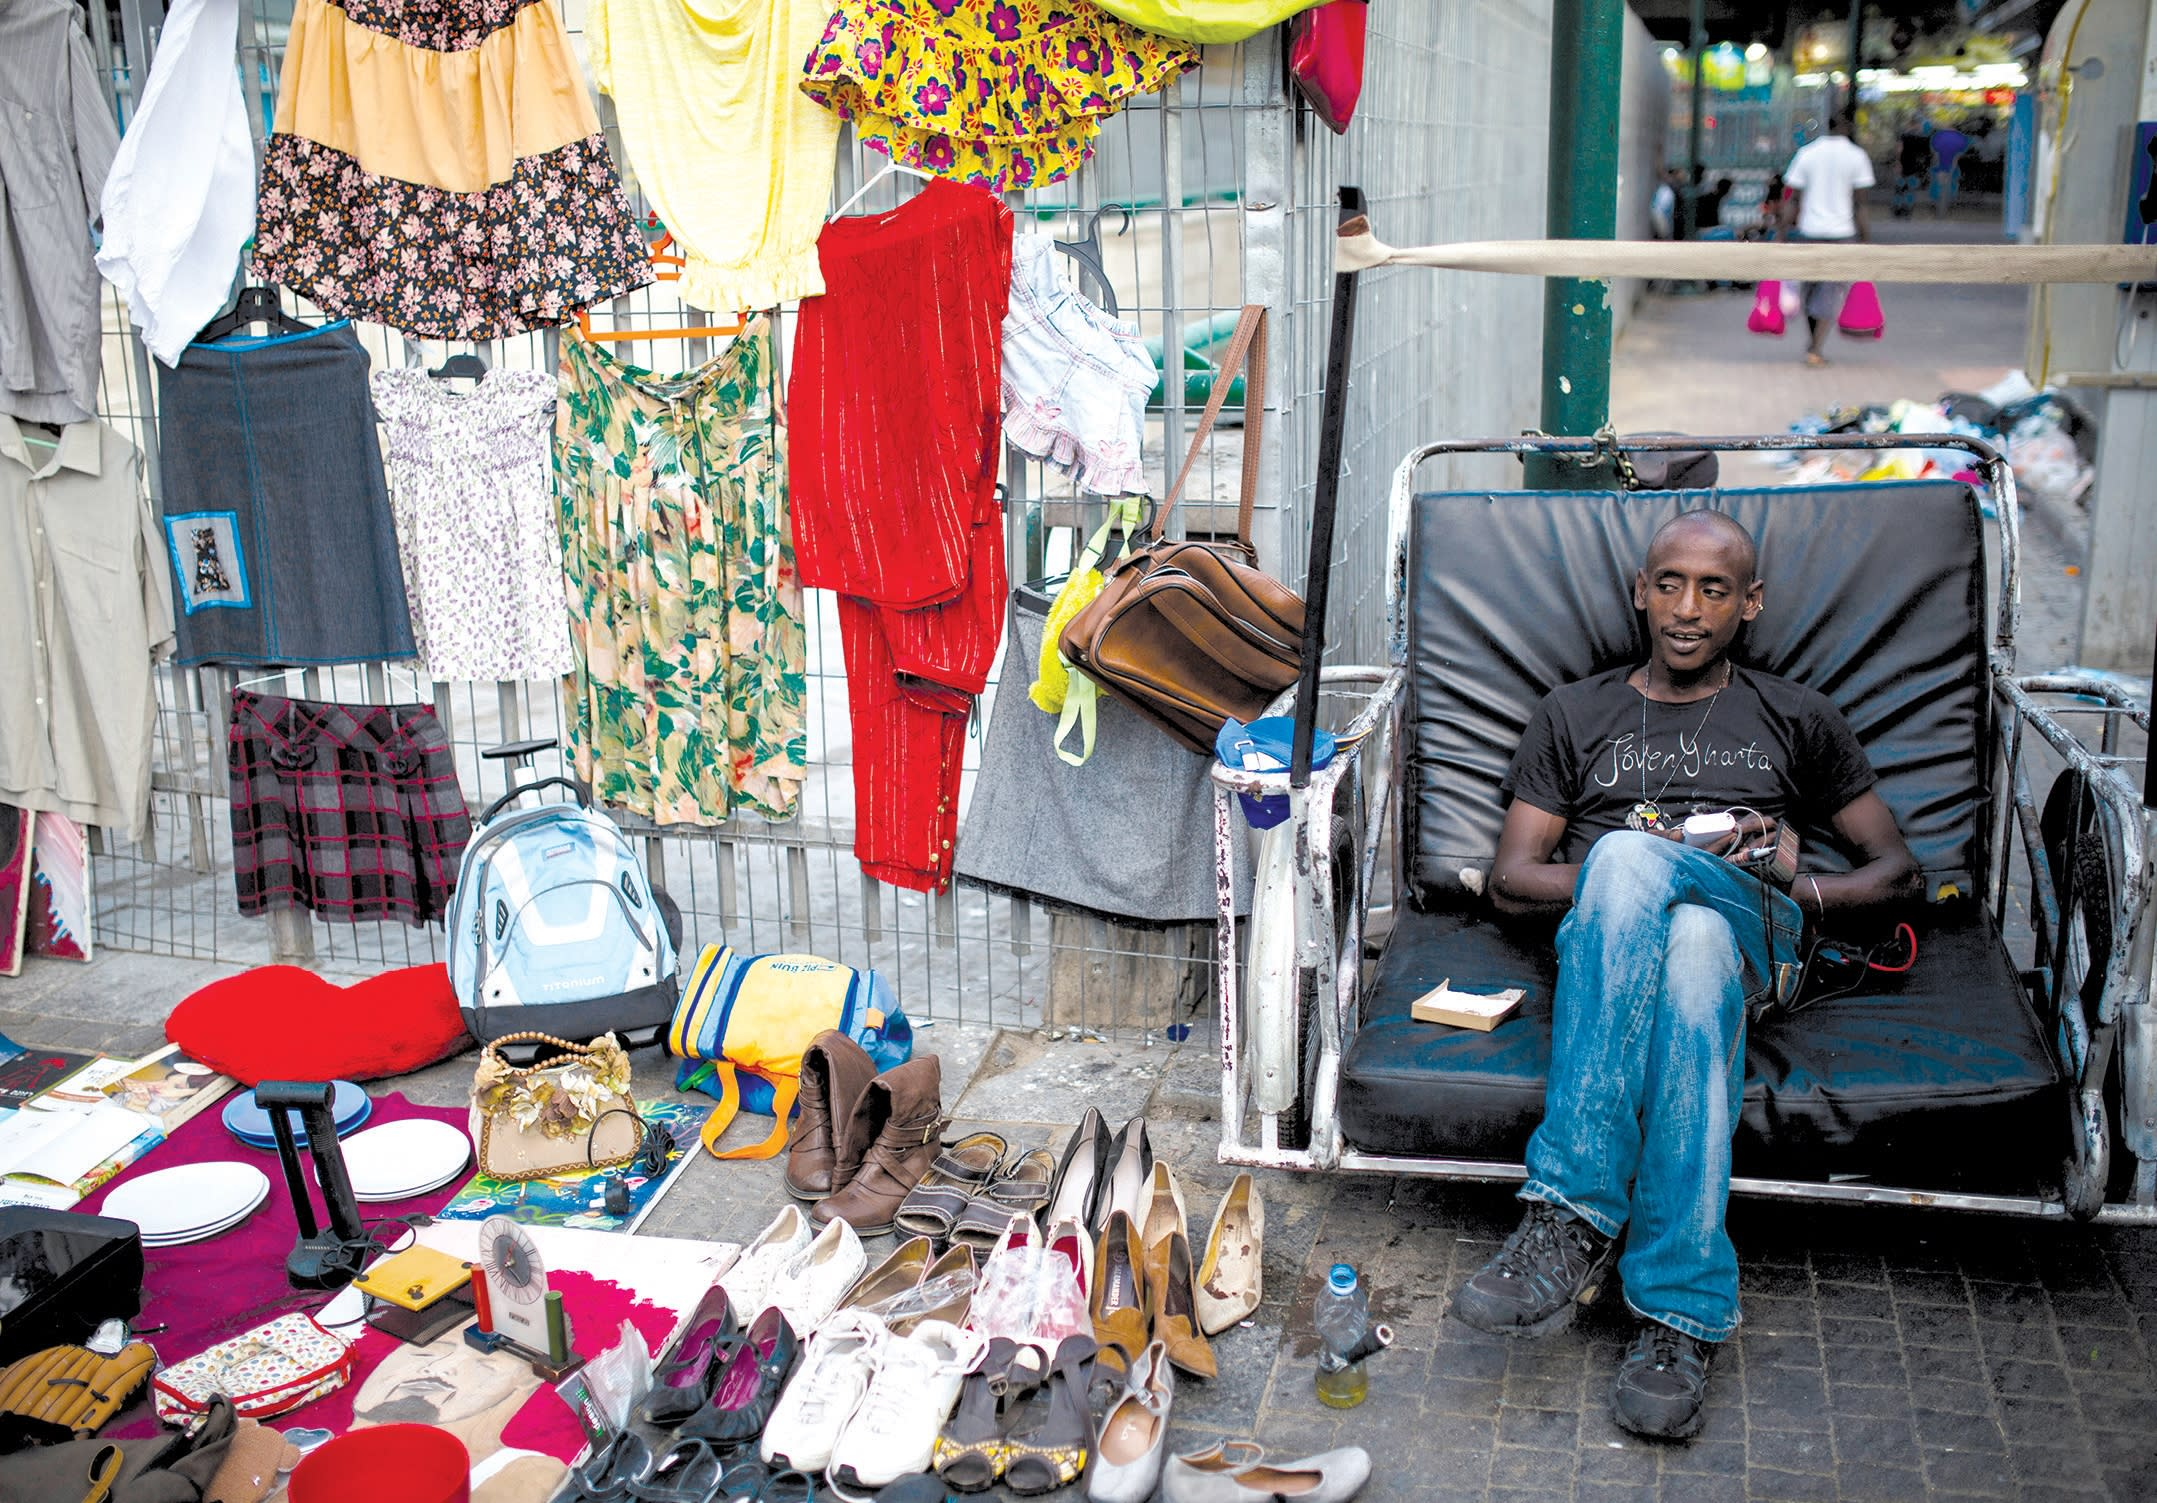 AN AFRICAN MIGRANT street vendor waits for customers in South Tel Aviv in July. (REUTERS/AMIR COHEN)